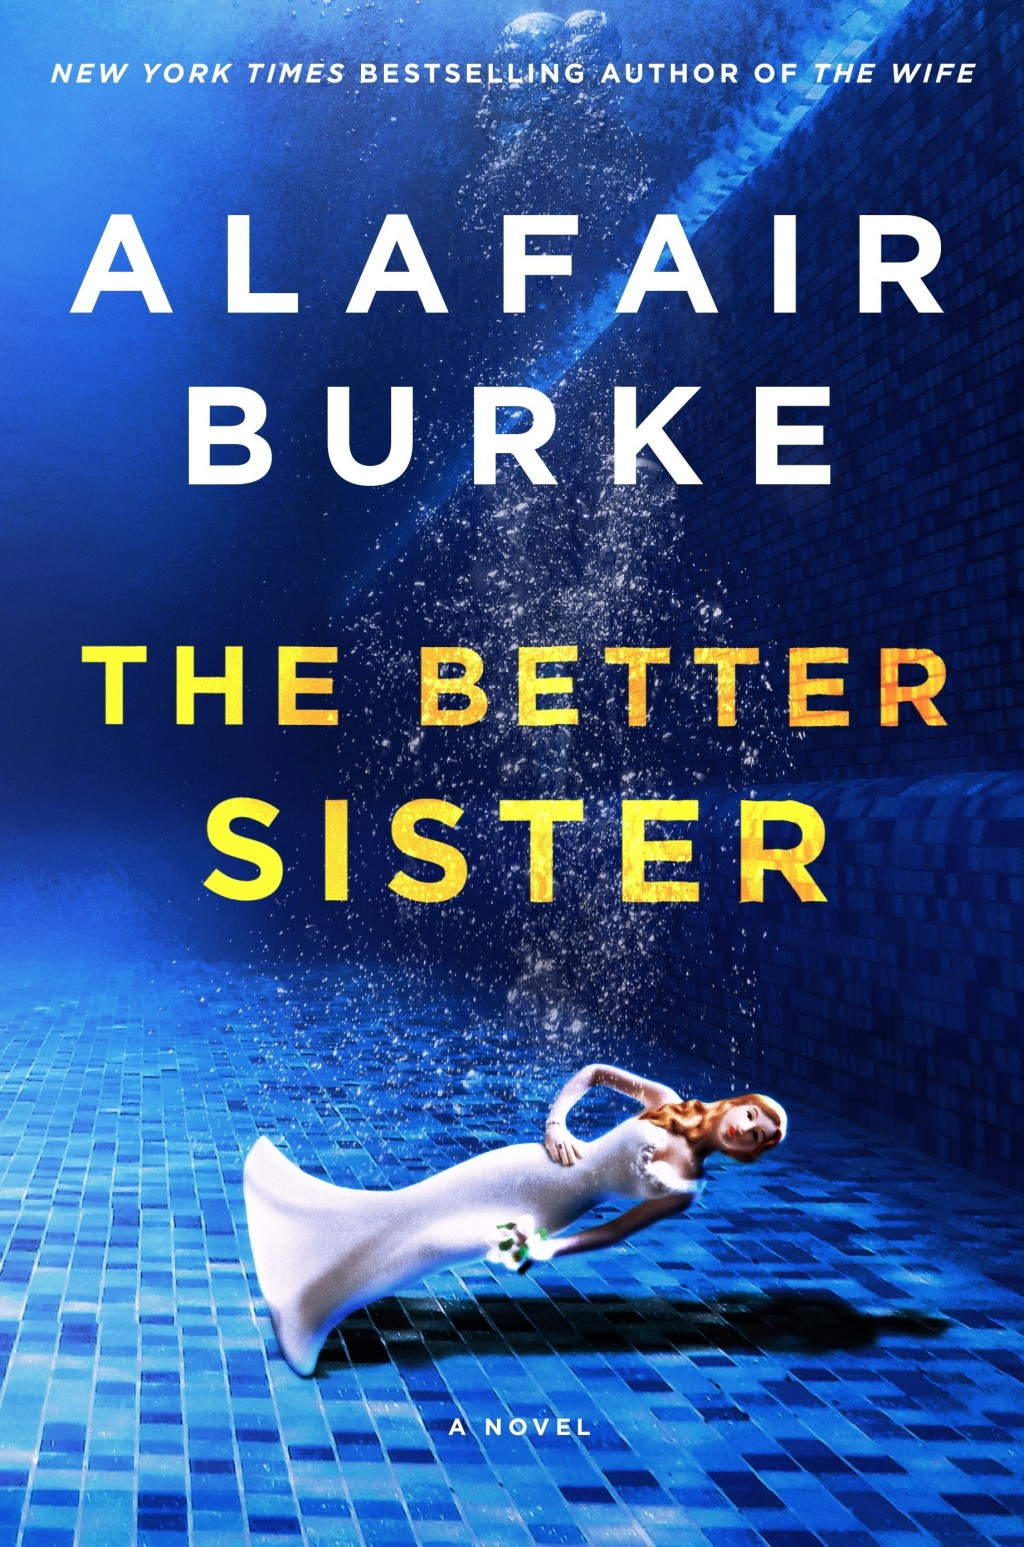 """This book cover image released by Harper shows """"The Better Sister,"""" a novel by Alafair Burke. (Harper via AP)"""